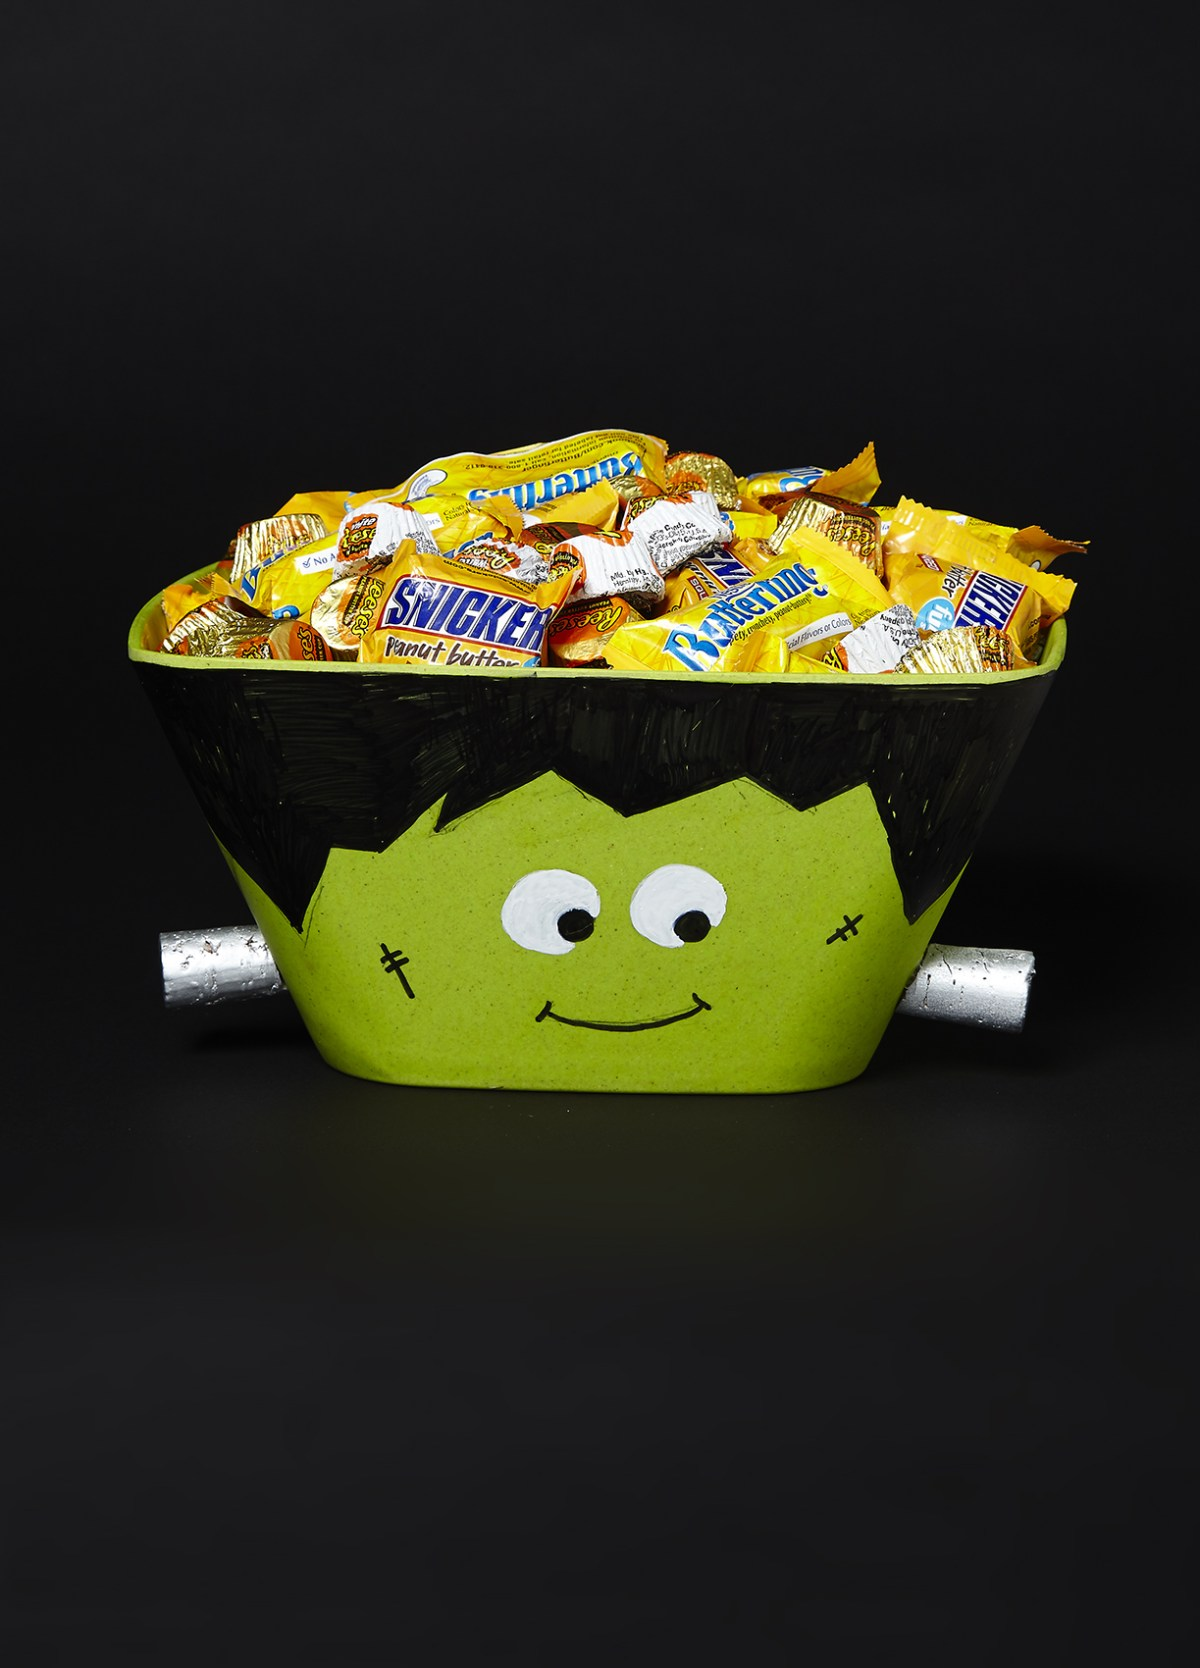 Frankenstein bowl DIY Halloween Candy Bowls You Can Serve For Halloween Treats